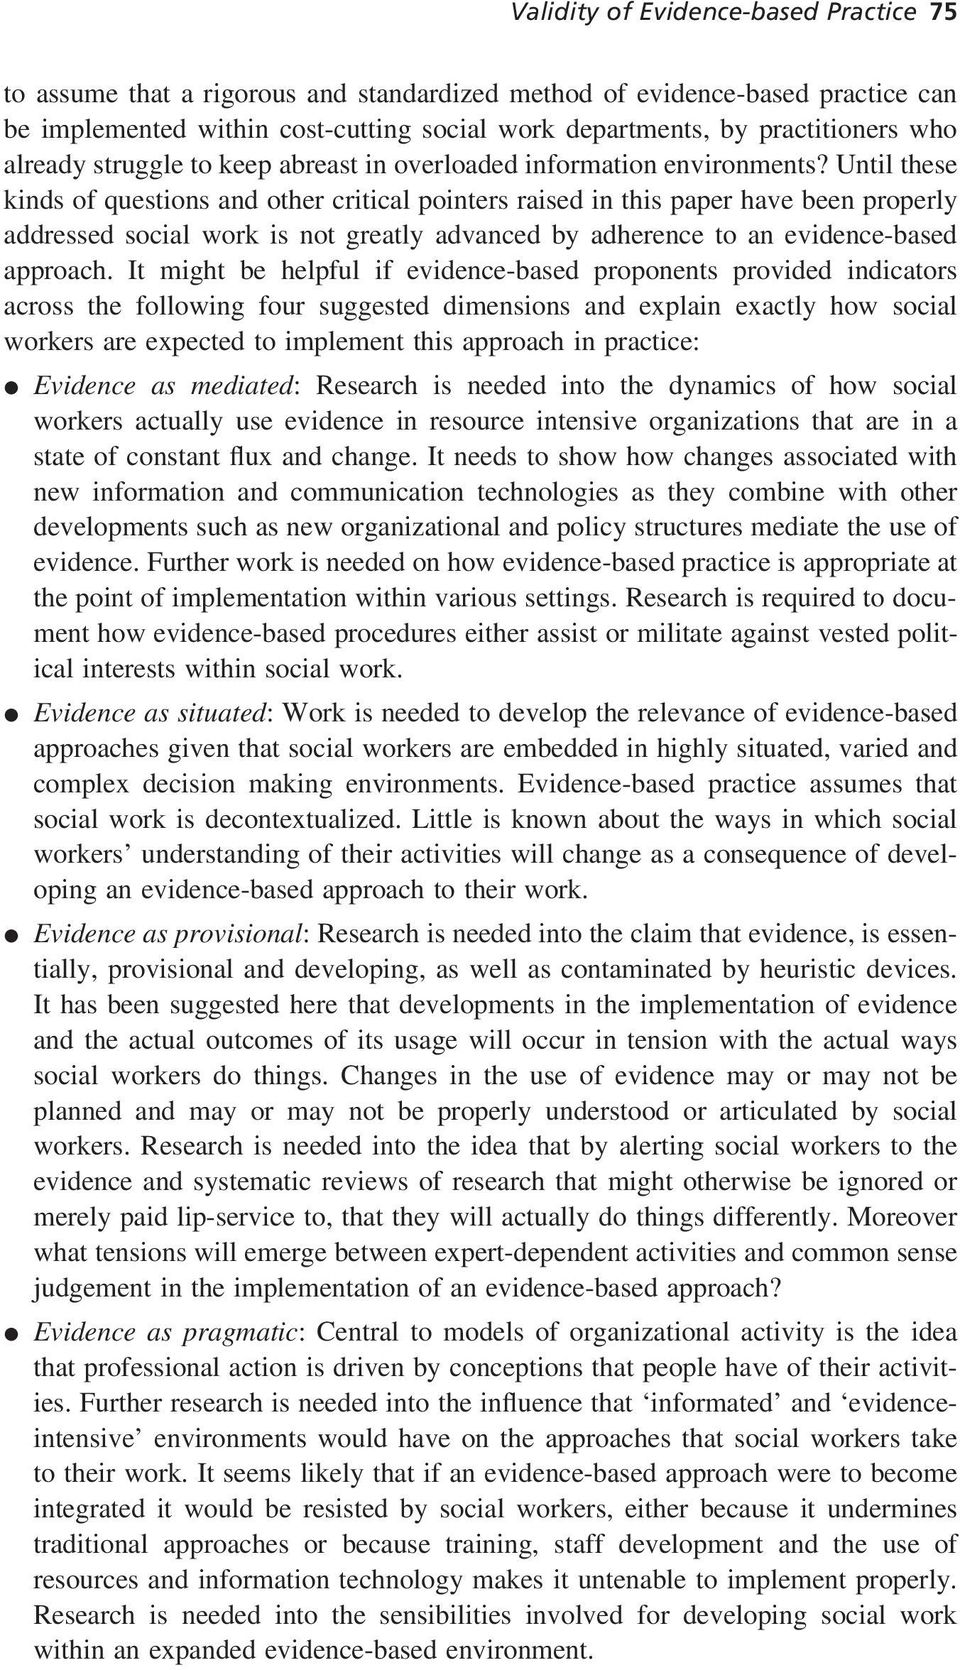 Until these kinds of questions and other critical pointers raised in this paper have been properly addressed social work is not greatly advanced by adherence to an evidence-based approach.